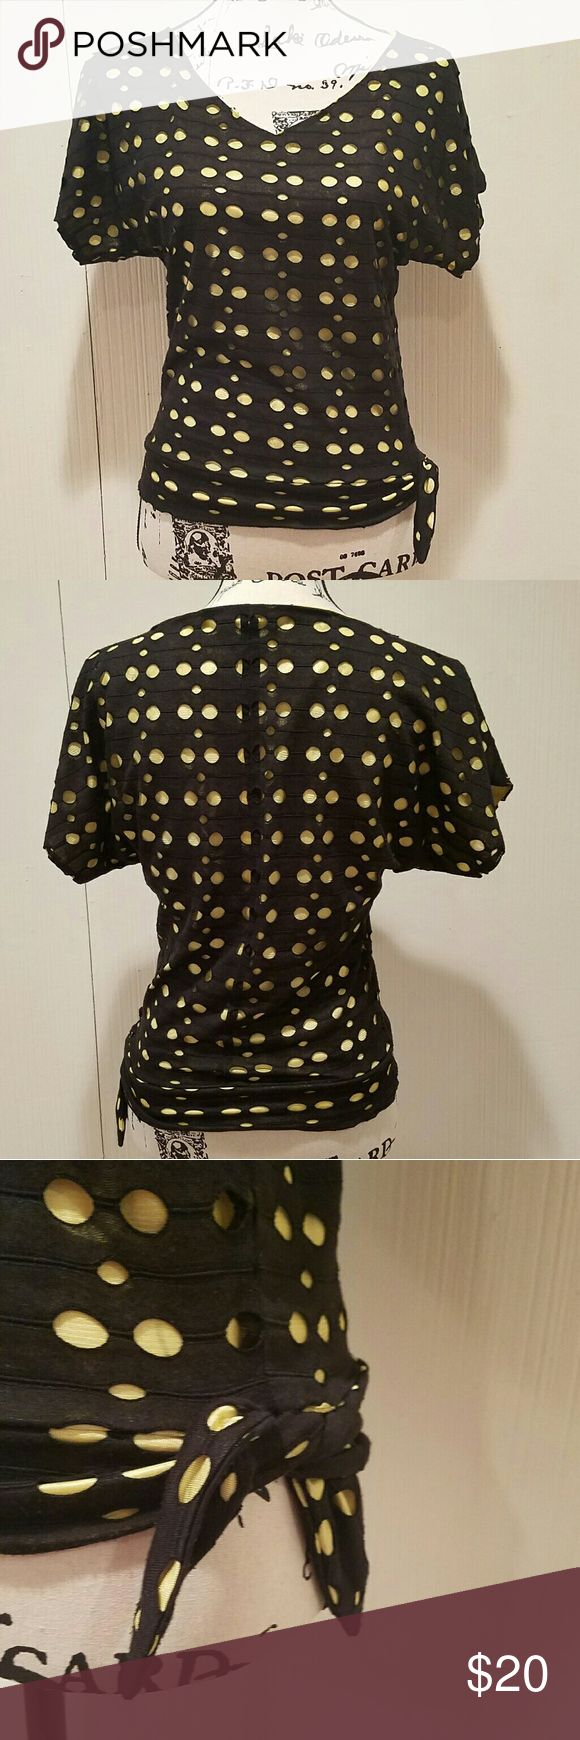 Black and yellow polka dot short sleeve top Adorable polka dot short sleeve top. Yellow lining and black over layer with holes. Side tie. Some slight pulls on lining (as shown in picture) but barely noticeable. Very small damage on front of shirt as shown in picture, not even noticeable. Top in very good condition. No tag so unsure of brand and size, but fits like a small. Tops Blouses